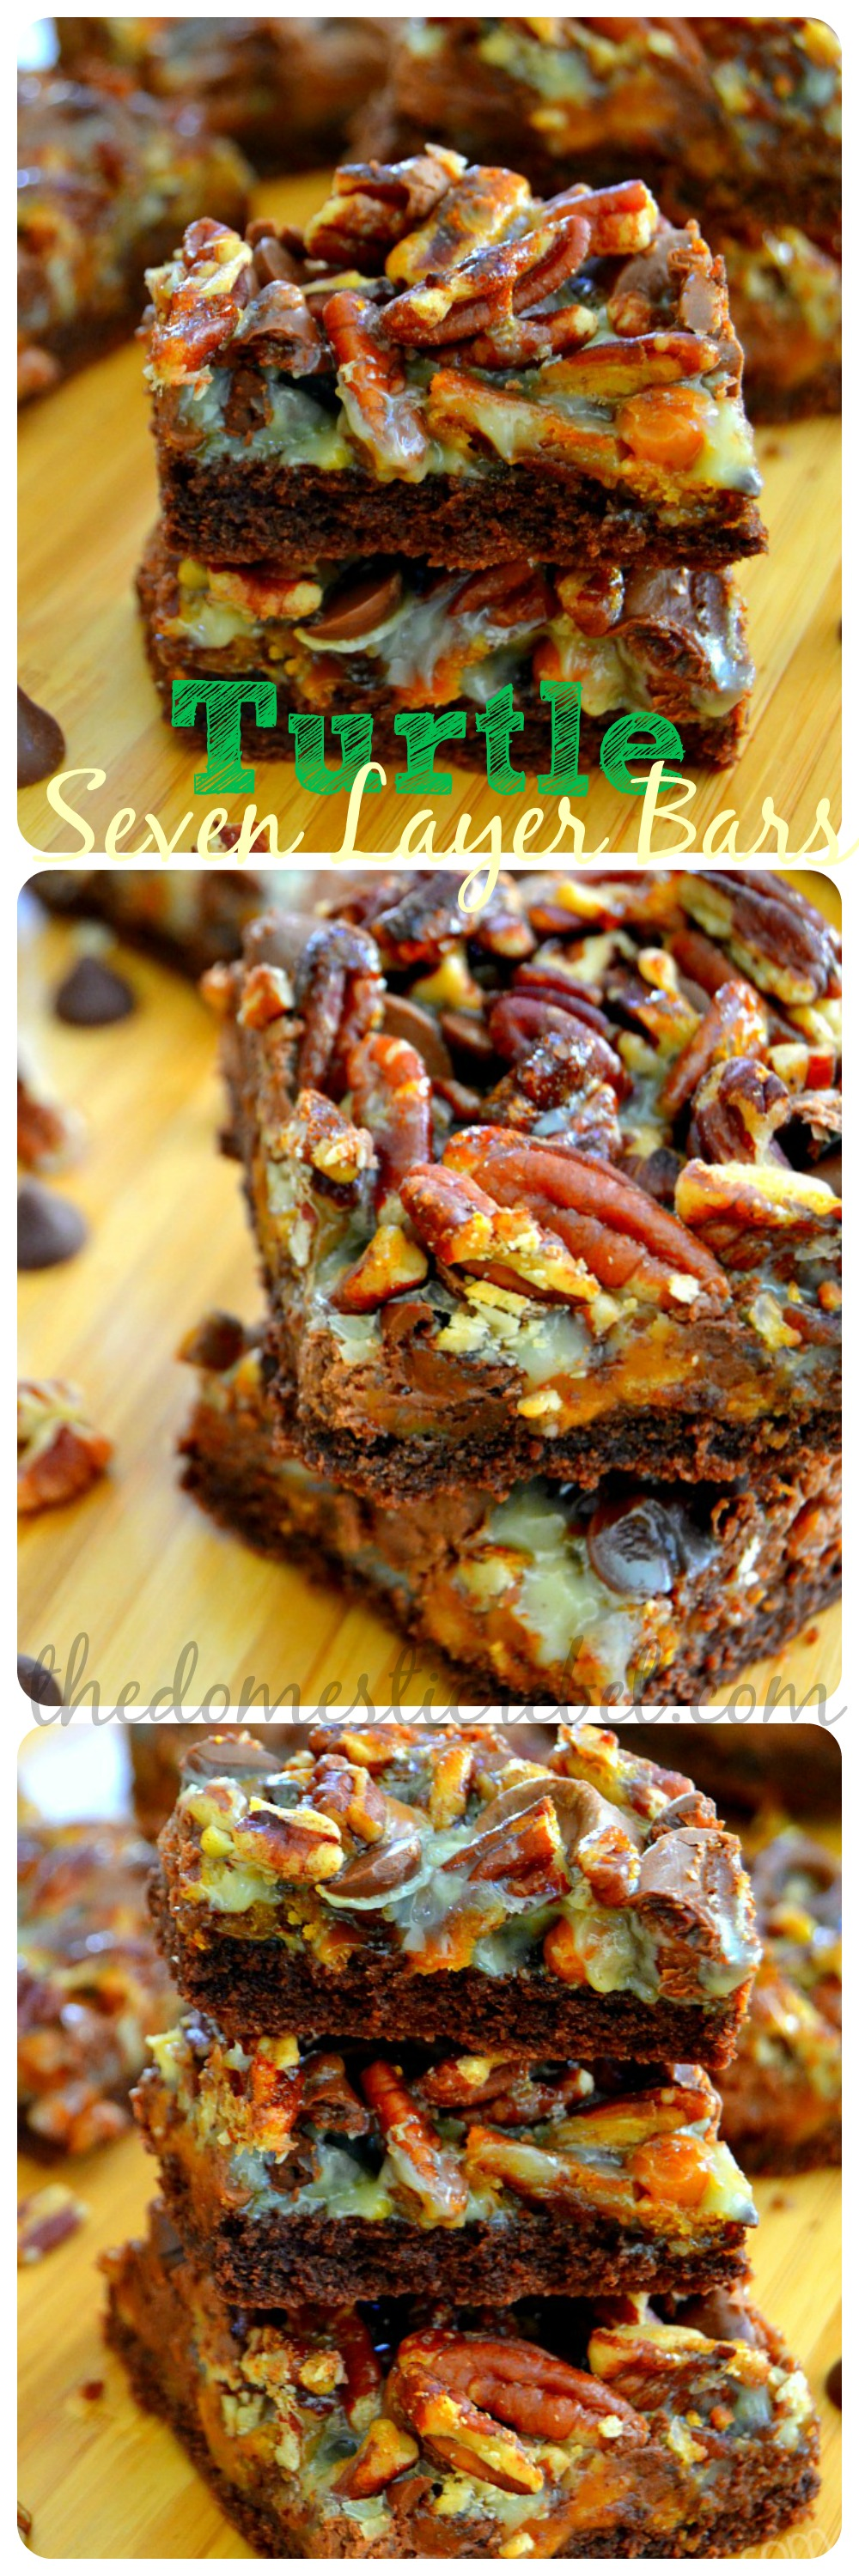 ... caramel peanut bars easy caramel apple bars caramel turtle bars